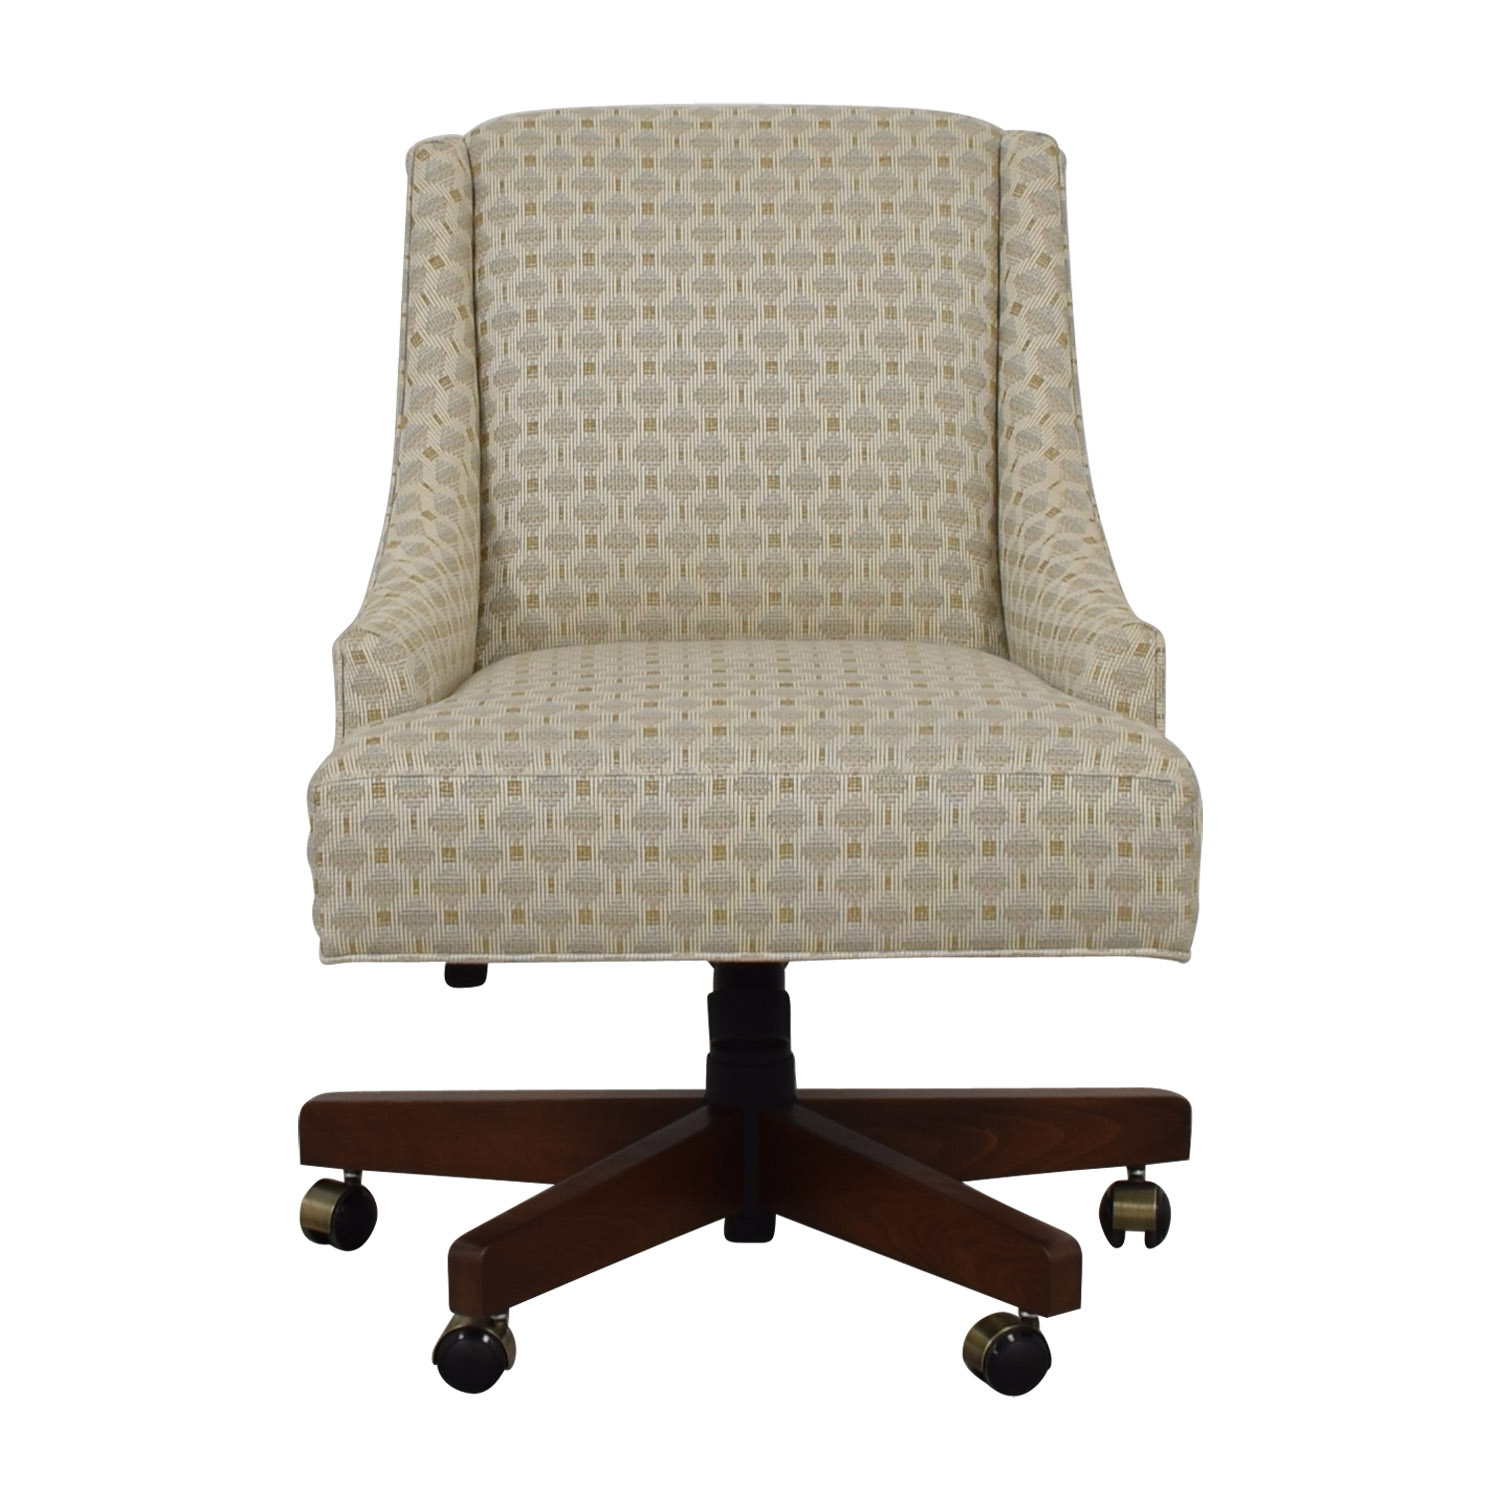 buy Ethan Allen Ethan Allen Beige Upholstered Office Chair on Castors online